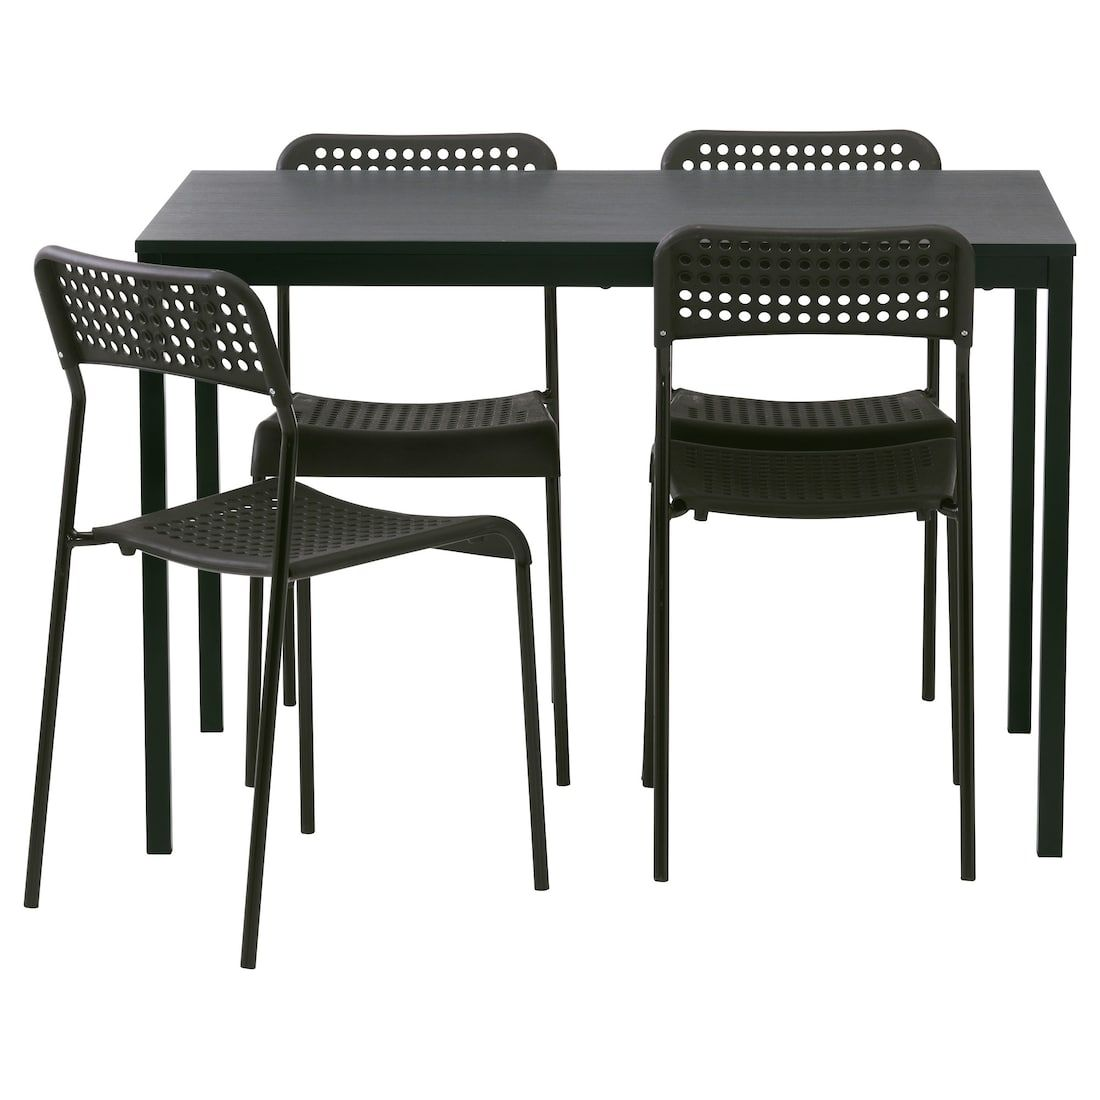 Tarendo Adde Table And 4 Chairs Black 43 1 4 Ikea Dining